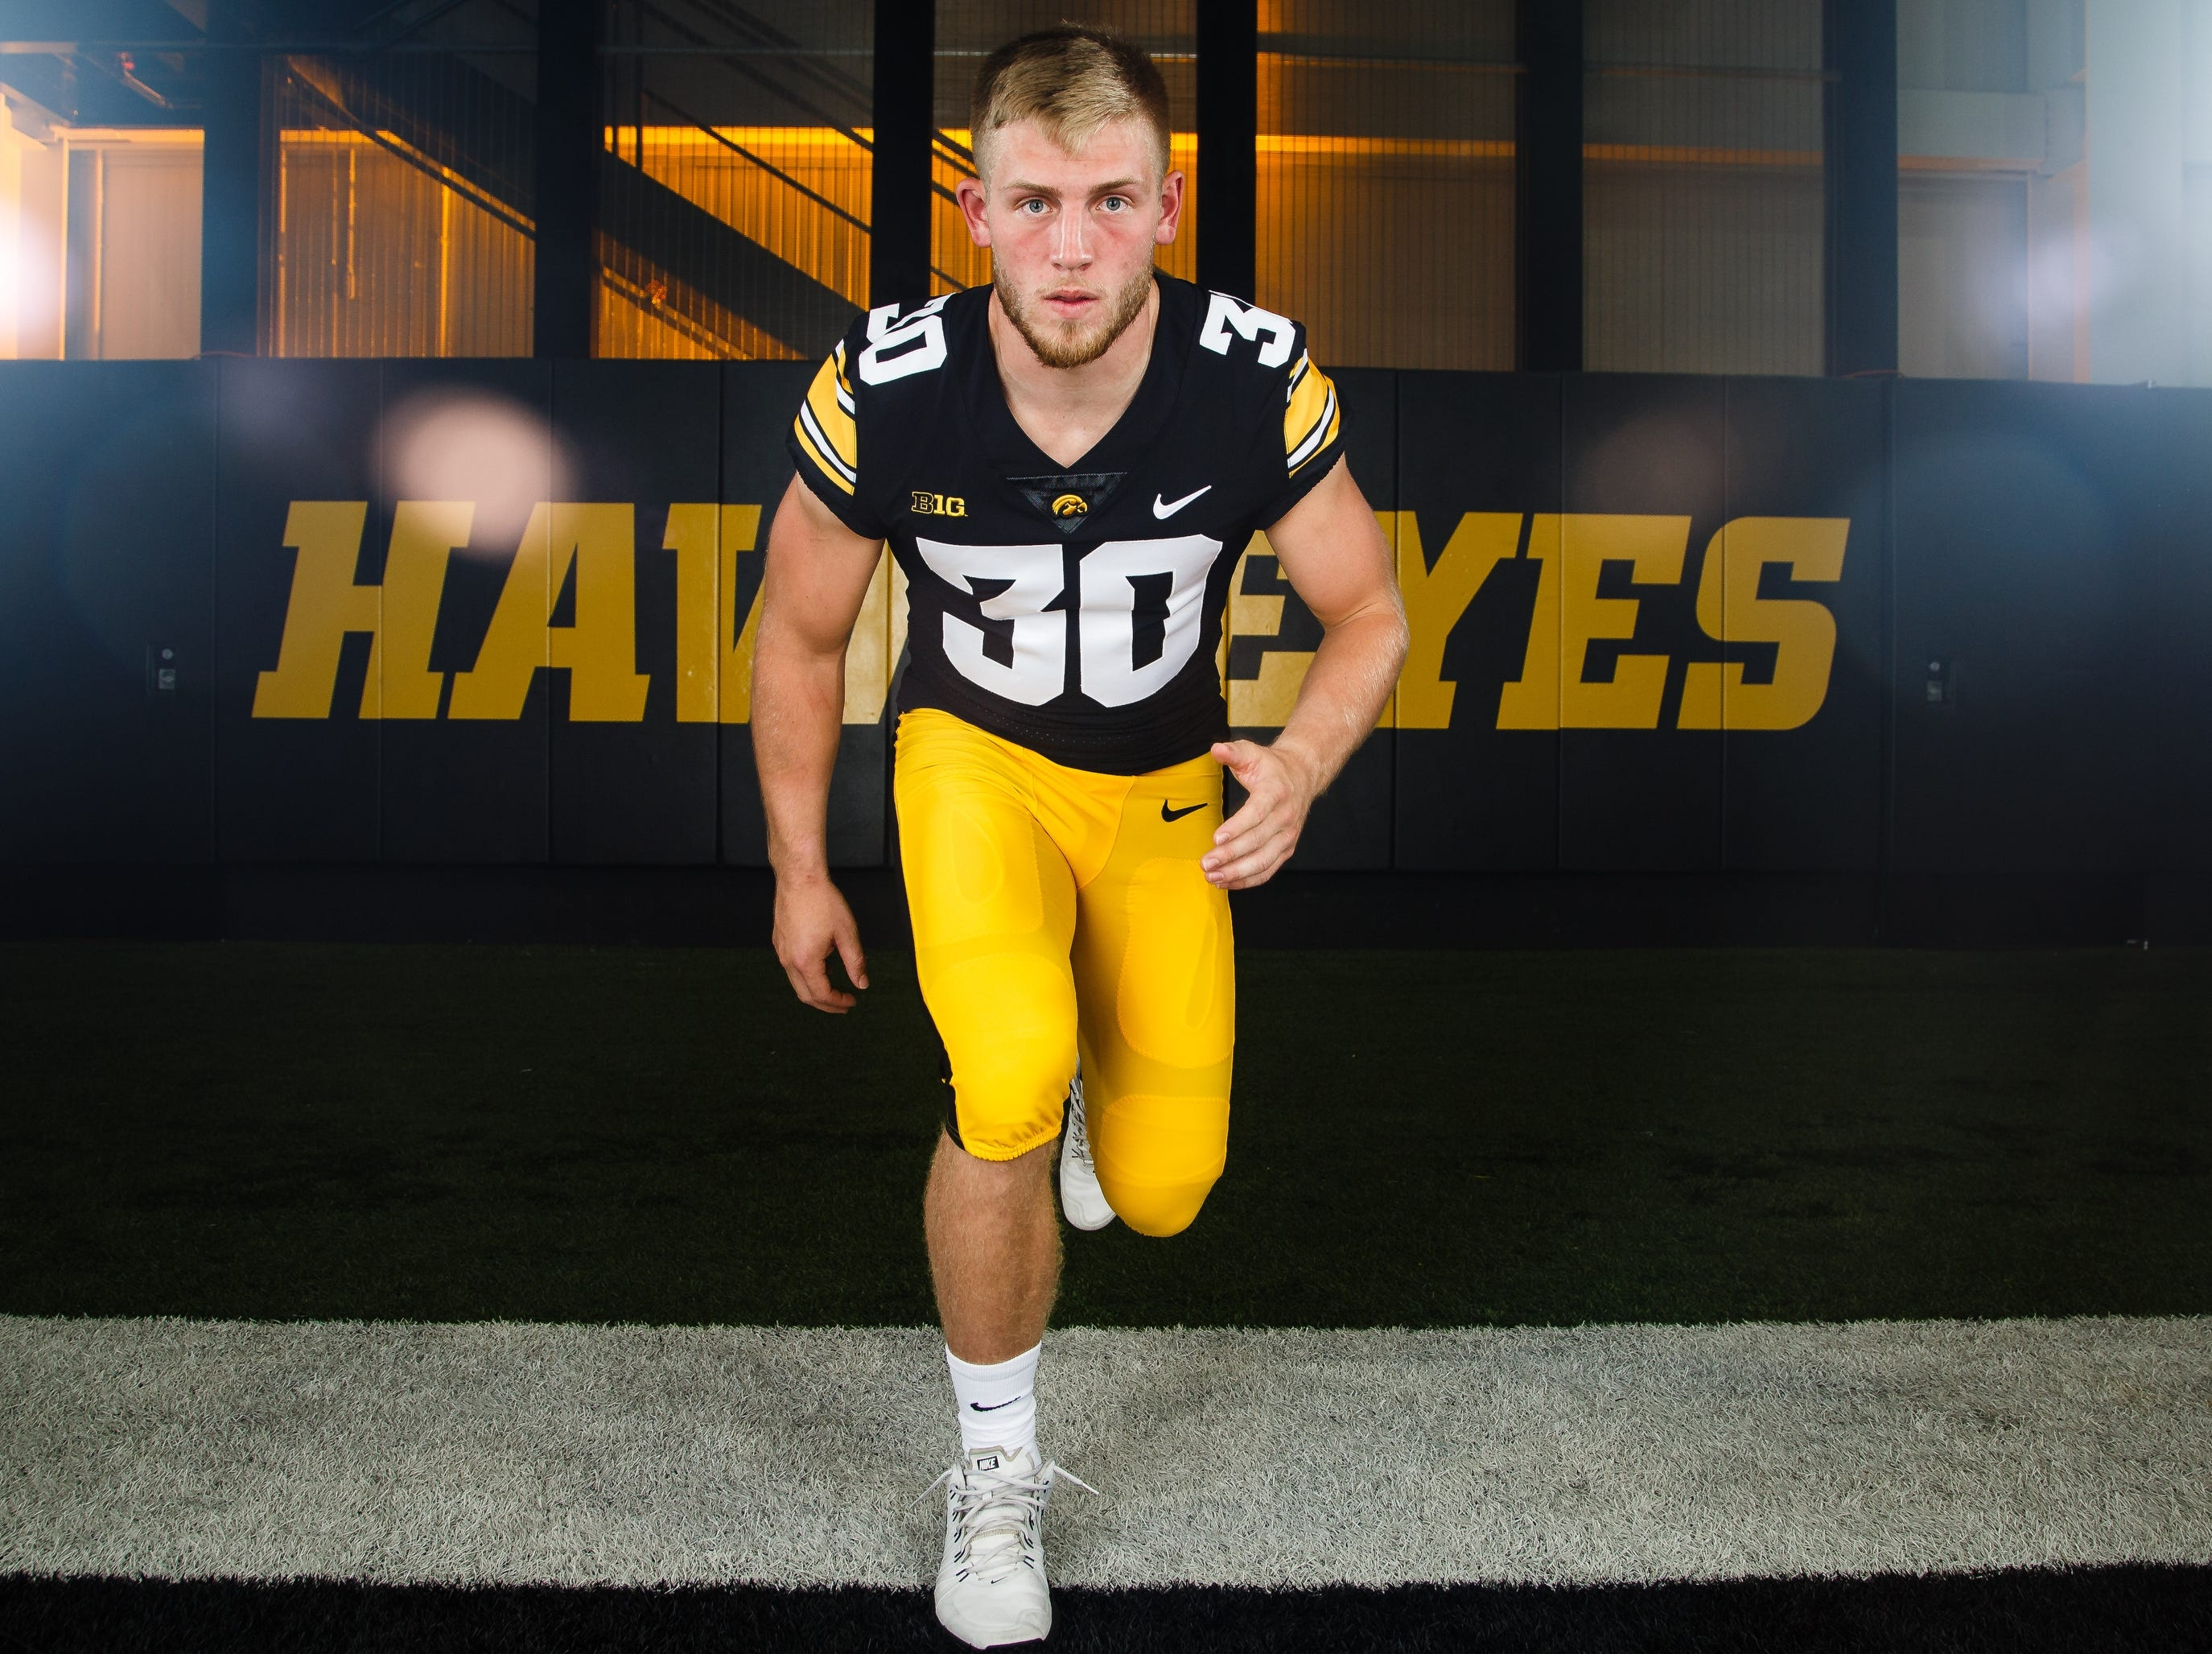 Iowa's Jake Gervase poses for a photo during the Iowa Football media day on Friday, Aug. 10, 2018 in Iowa City.